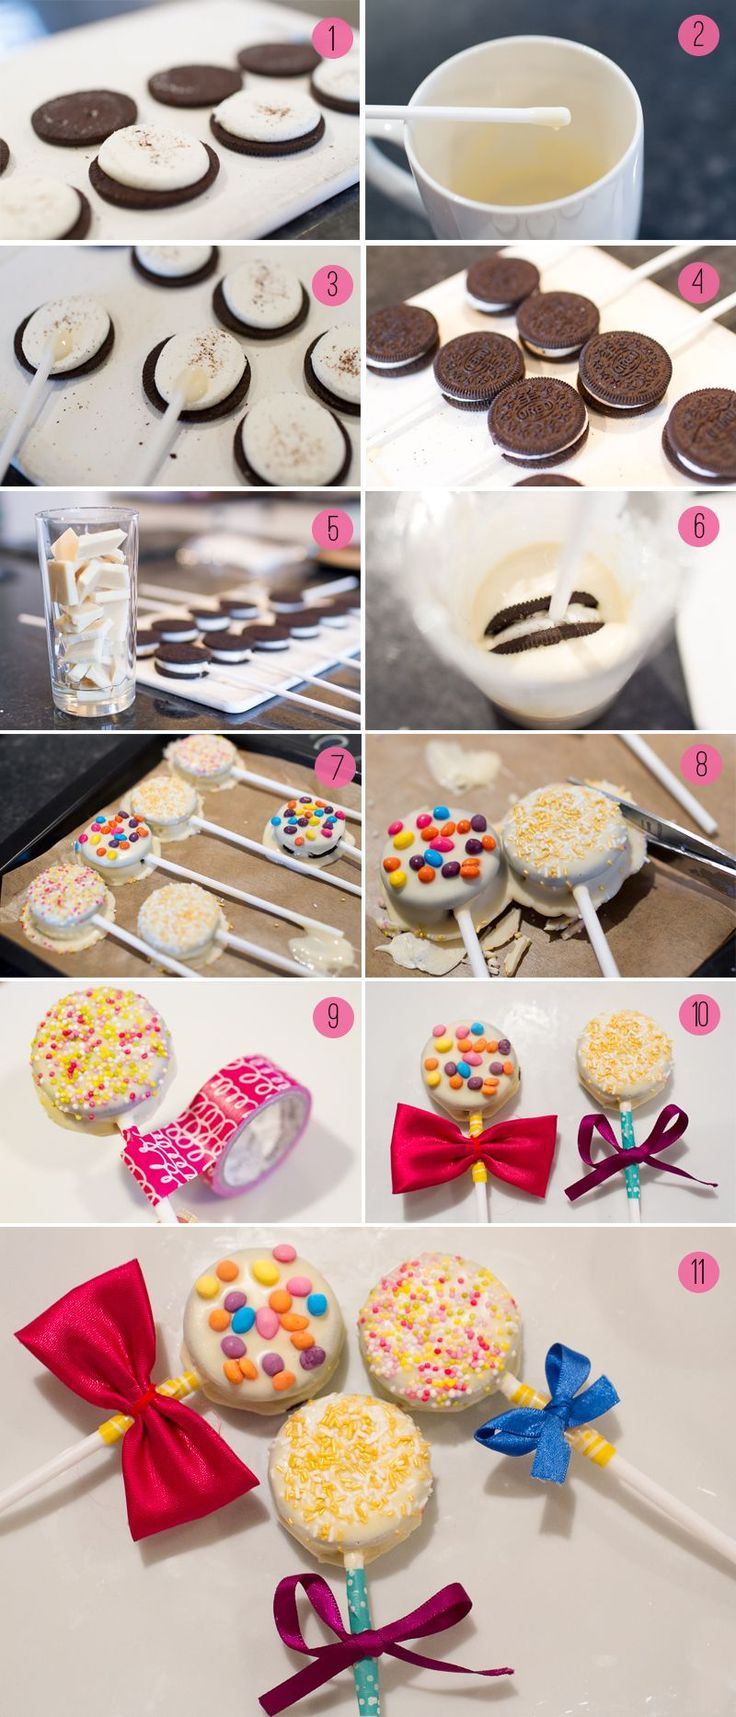 - How To Make Oreo Pops